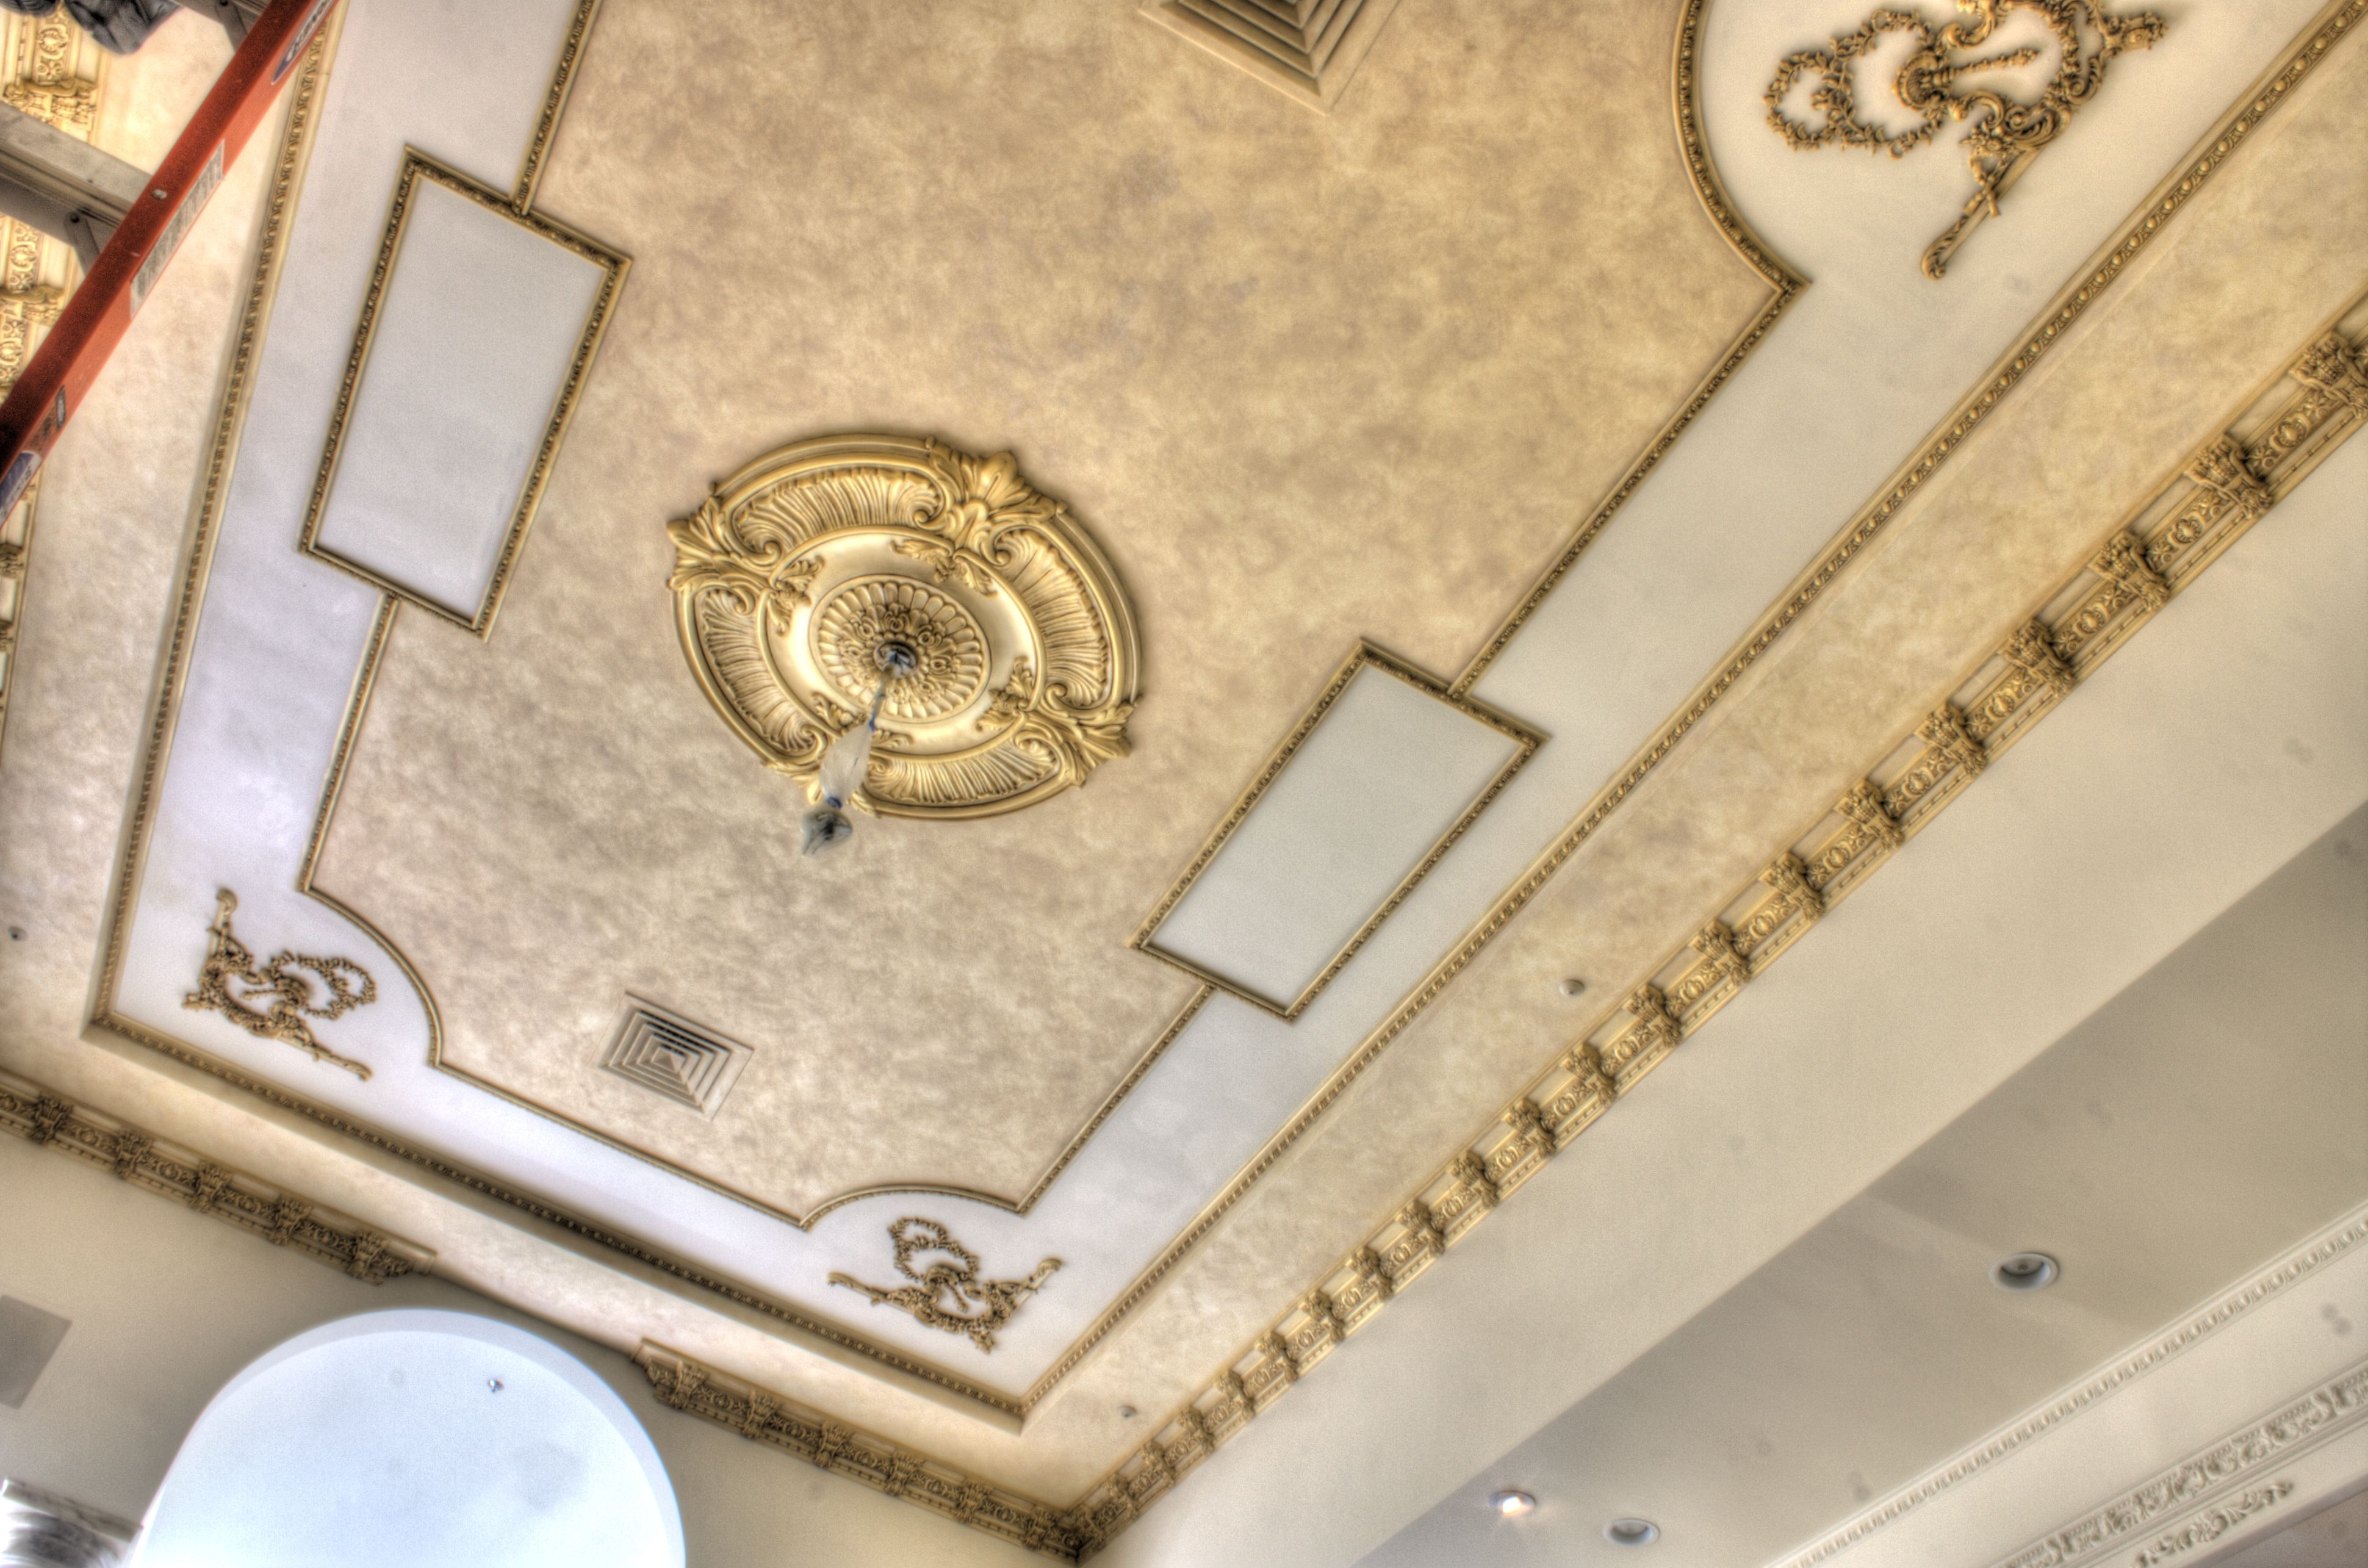 Antique Gold Metallic Paint Finish applied to decorative moldings on ...